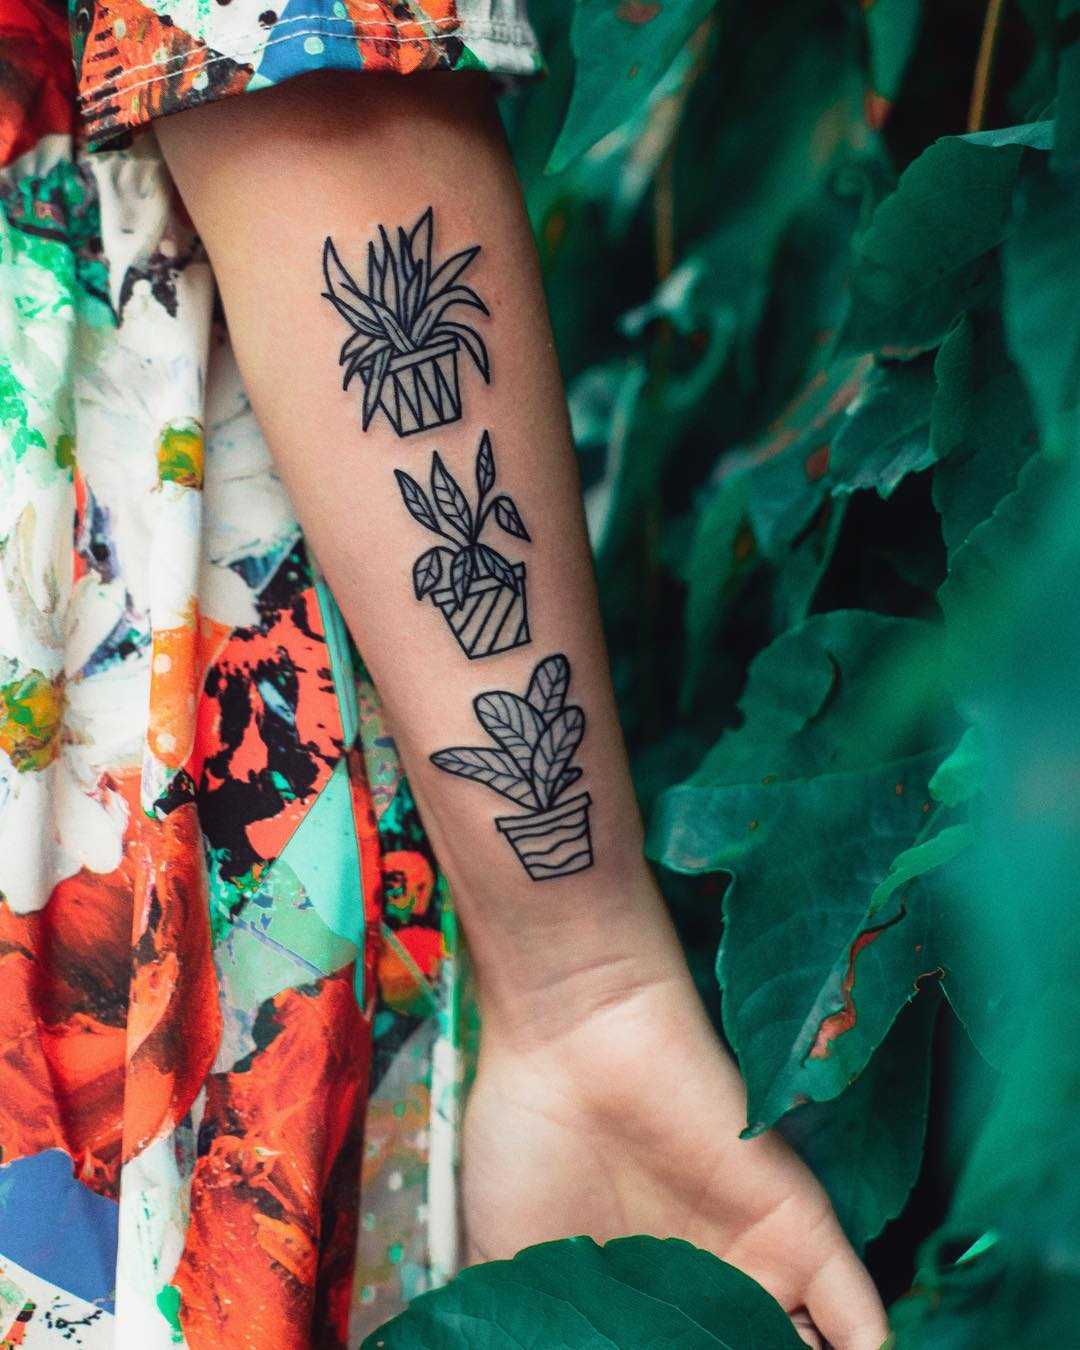 Plant collection tattoo by Dżudi Bazgrole